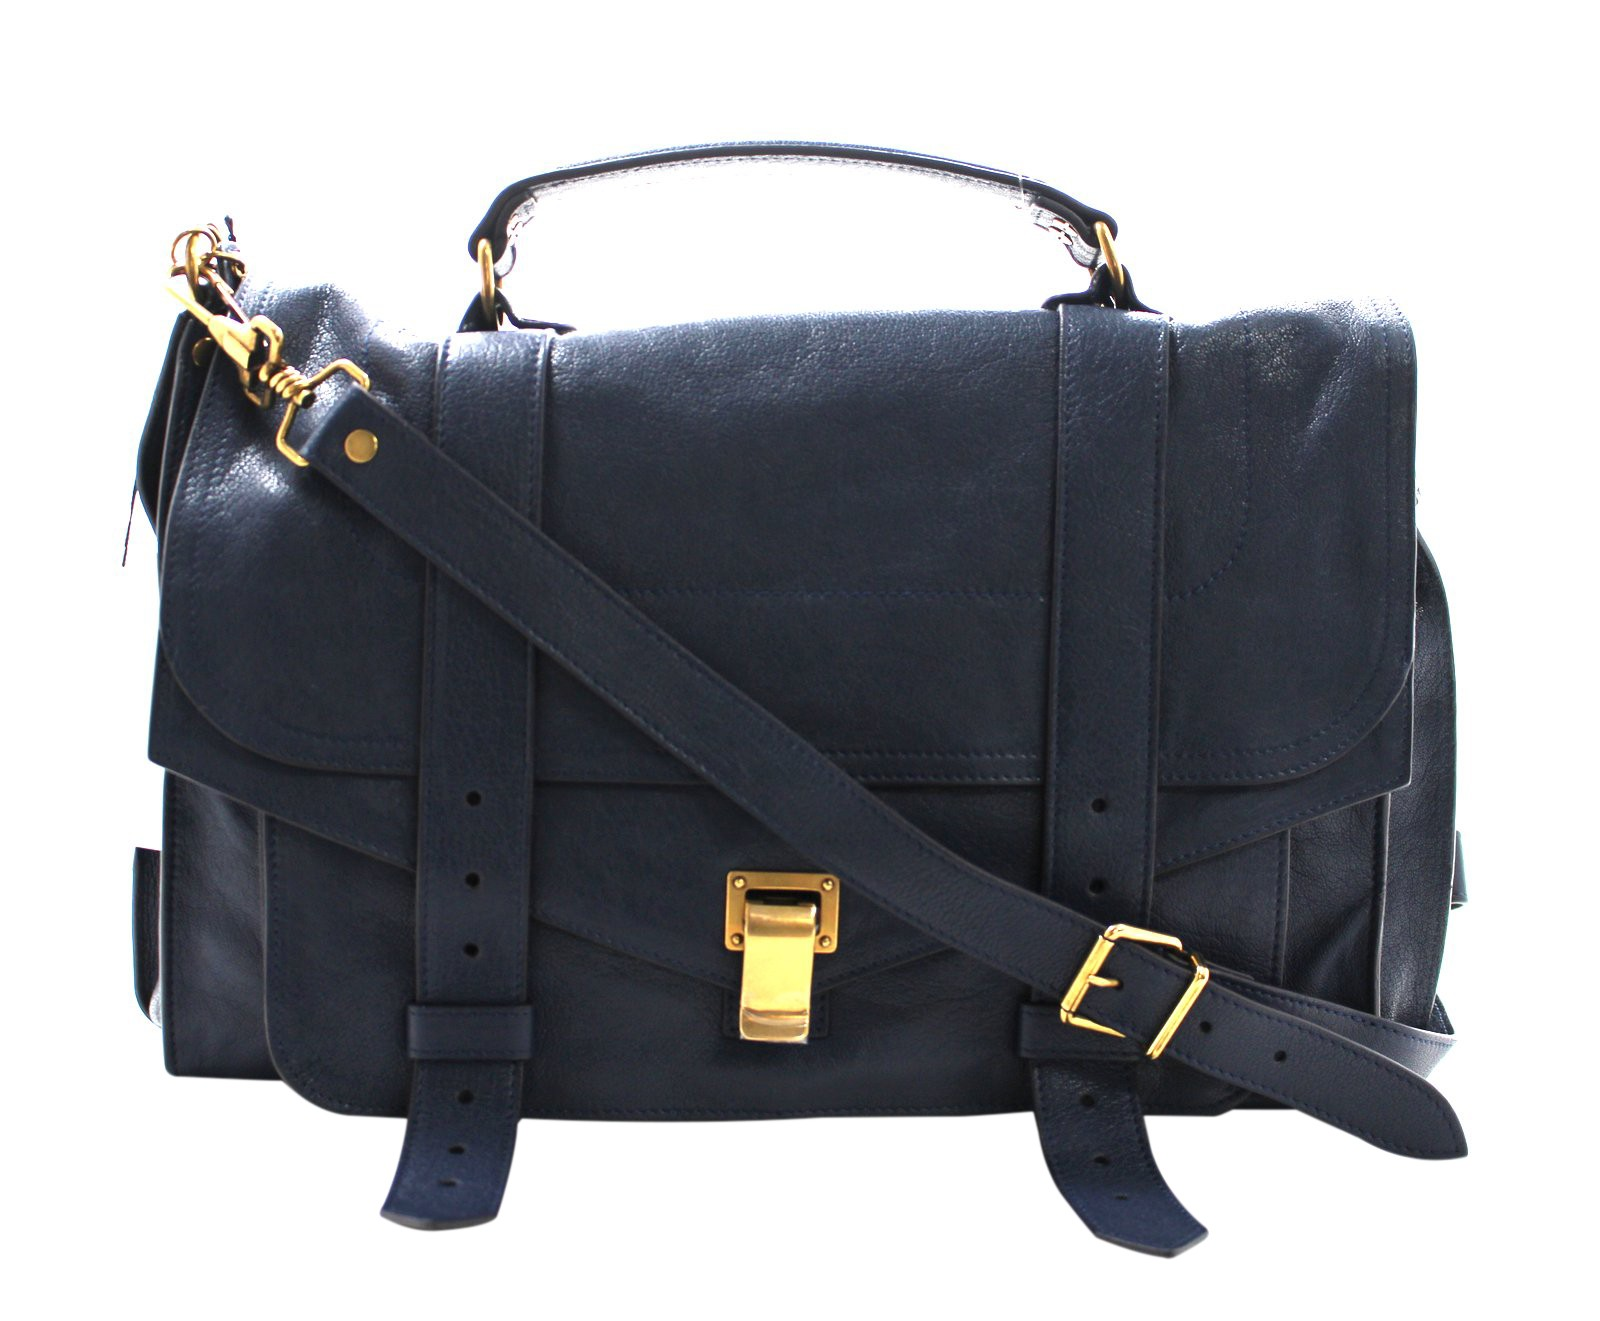 Proenza Schouler Messenger Bag | Proenza Schouler Ps1 Medium Suede | Ps1 Bag